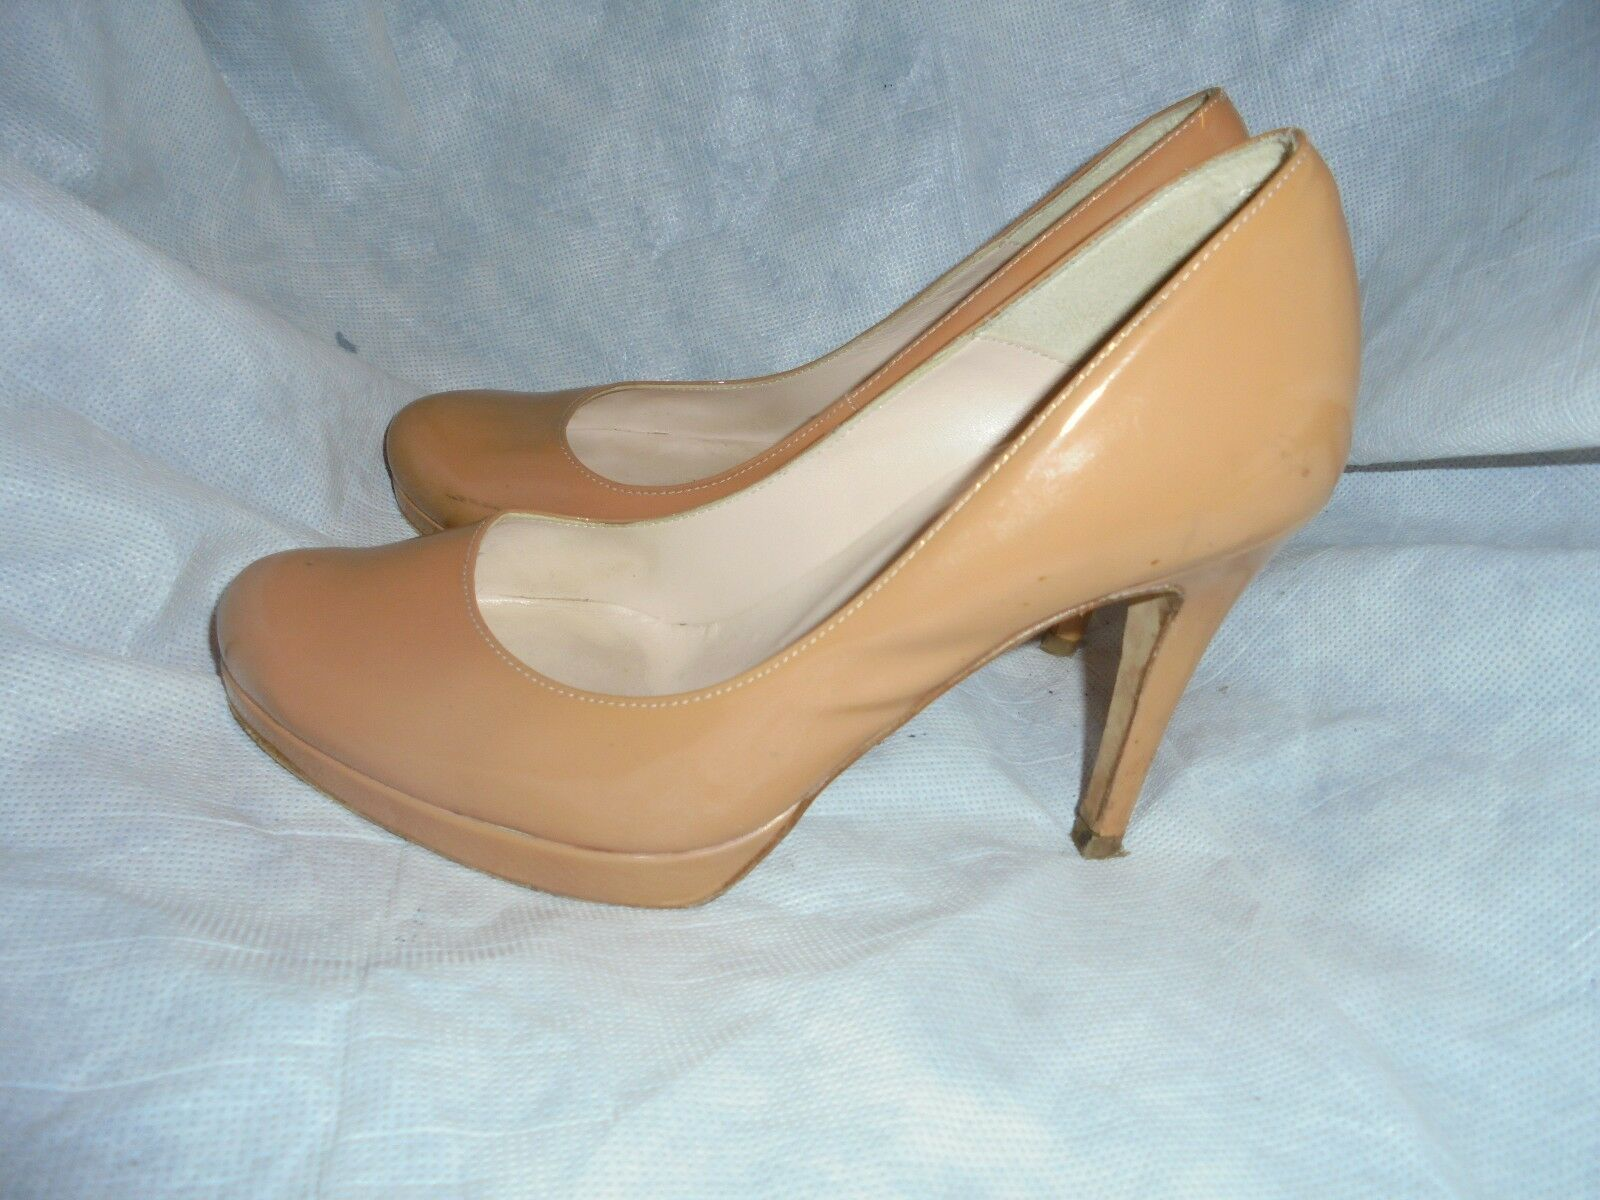 RUSSELL BROMLEY PATENT TAN PATENT BROMLEY LEATHER SLIP ON COURT SHOE SIZE UK 4.5 EU 37.5 VGC 313c37